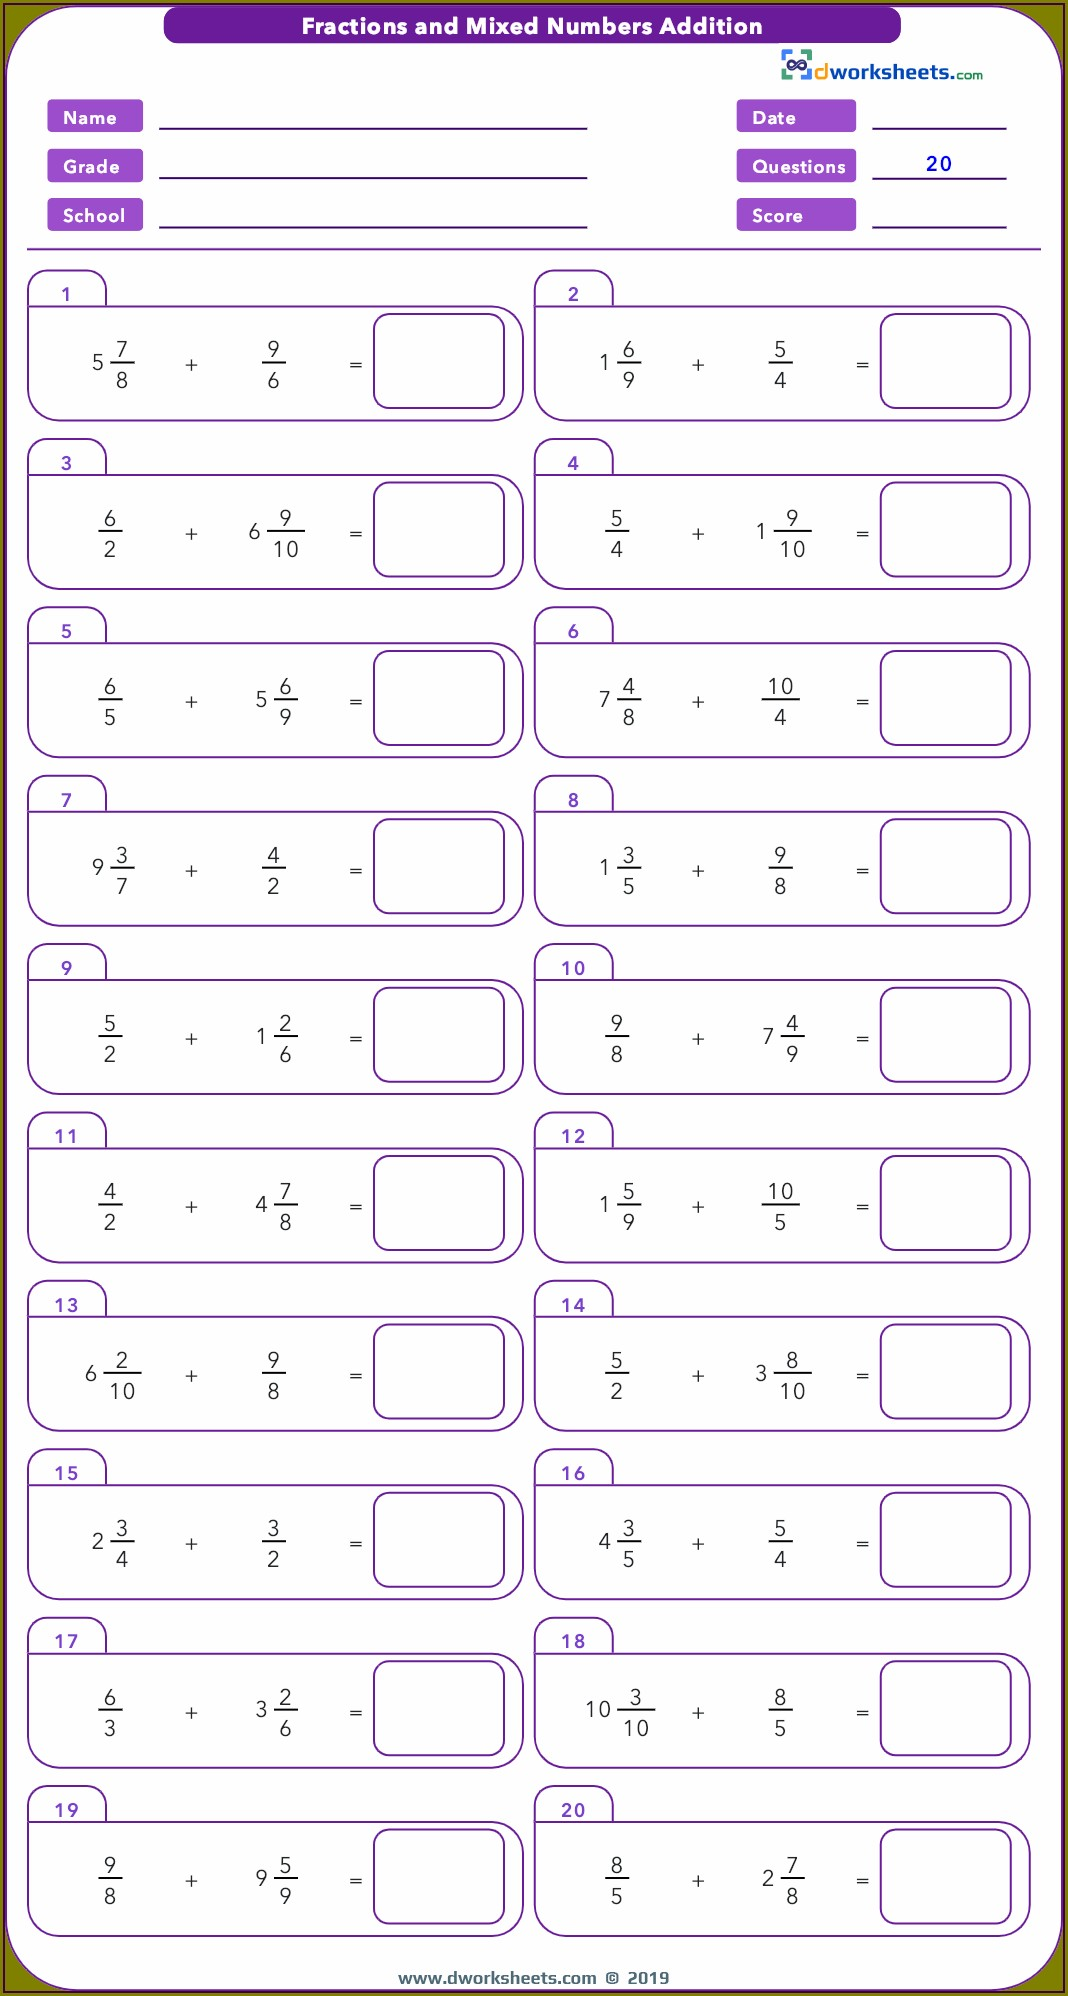 Fractions Worksheets With Mixed Numbers